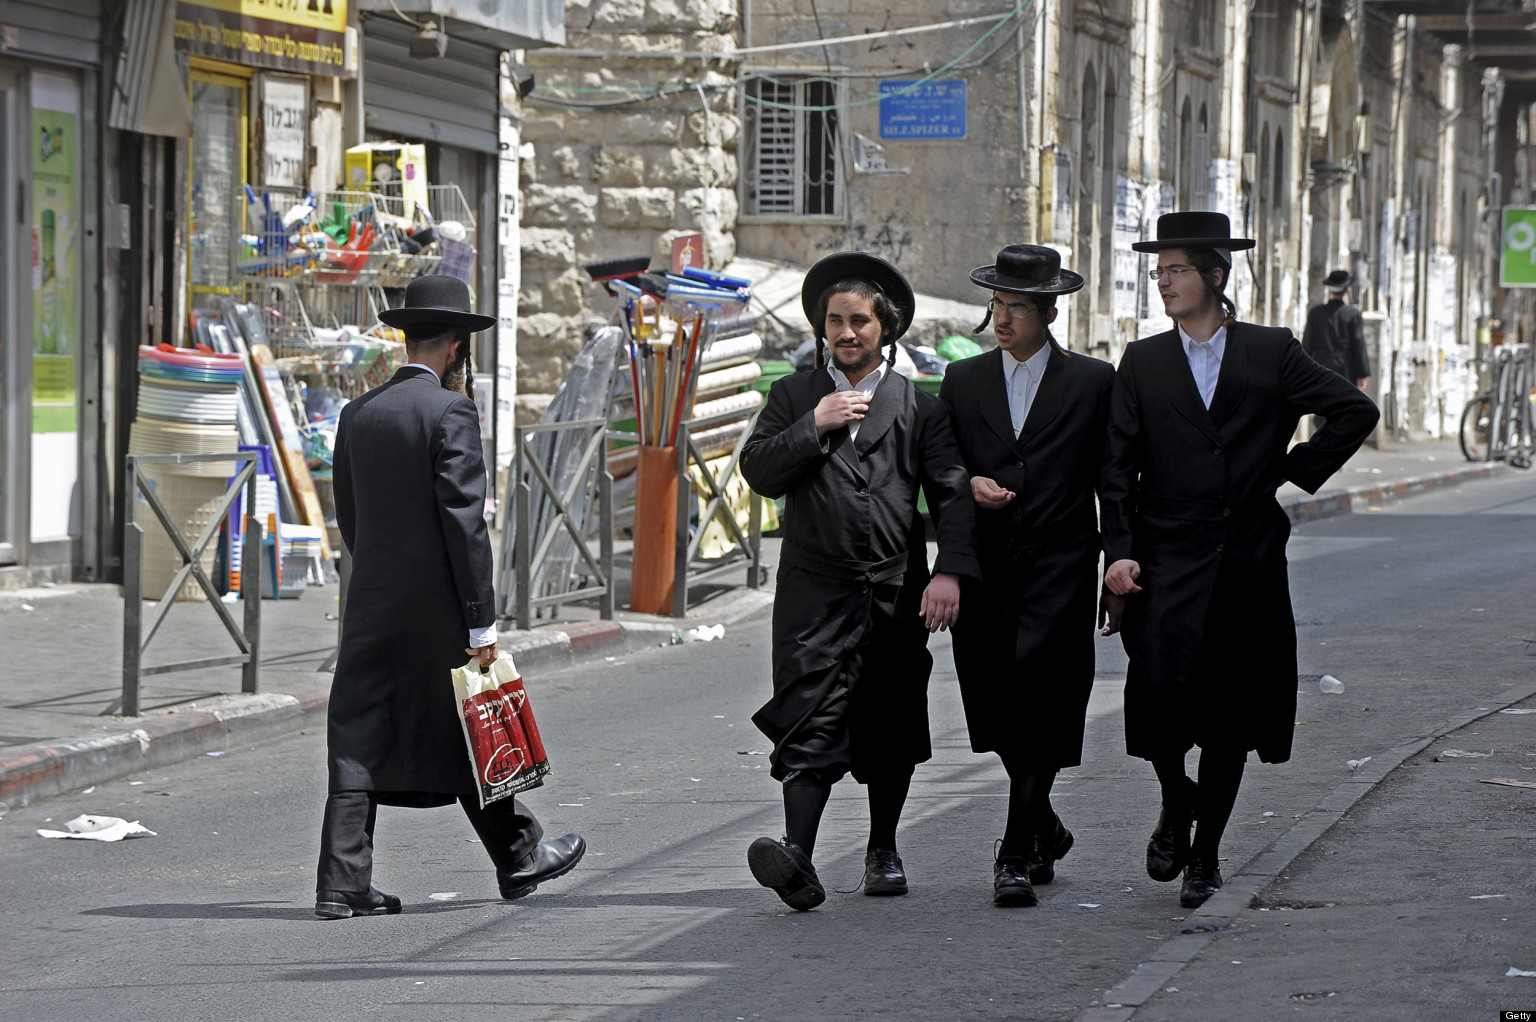 jewish single men in rock hill Thousands of jewish singles on your new alternative to high restriction jewish dating sites come find other jewish singles on the fastest growing national jewish dating site on the web.